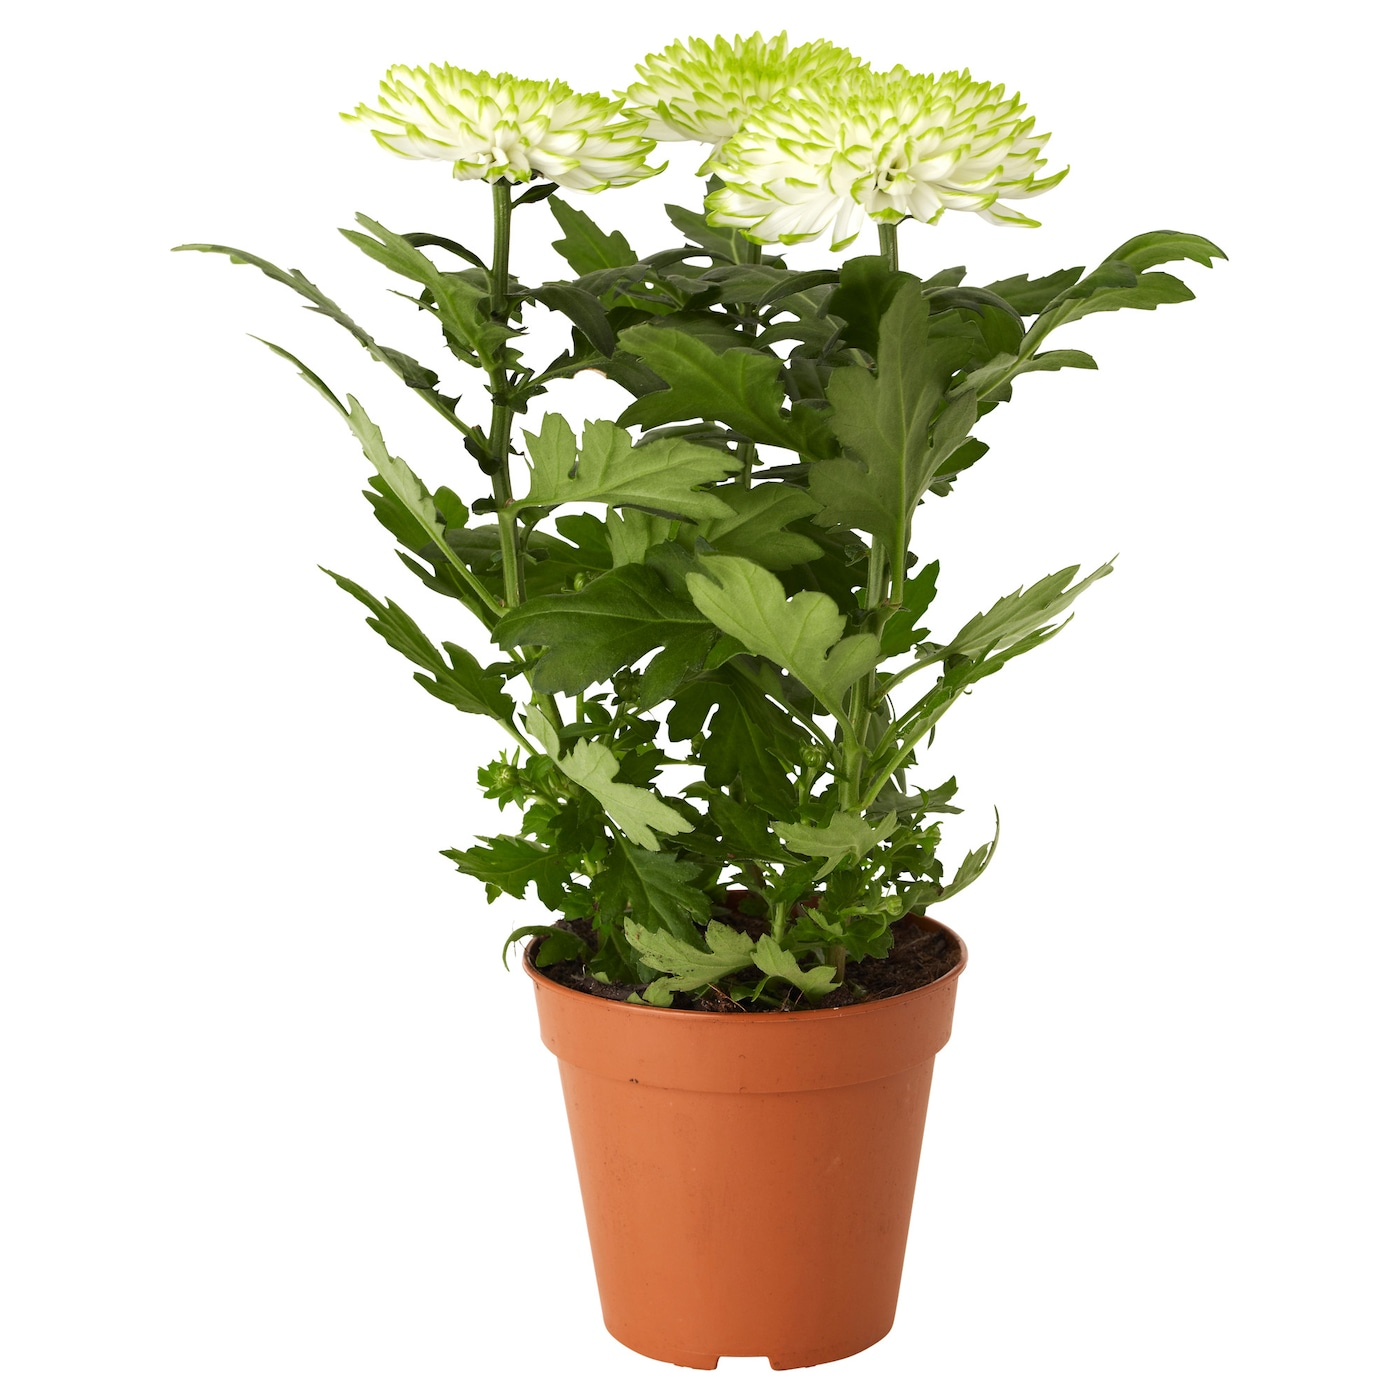 IKEA CHRYSANTHEMUM potted plant